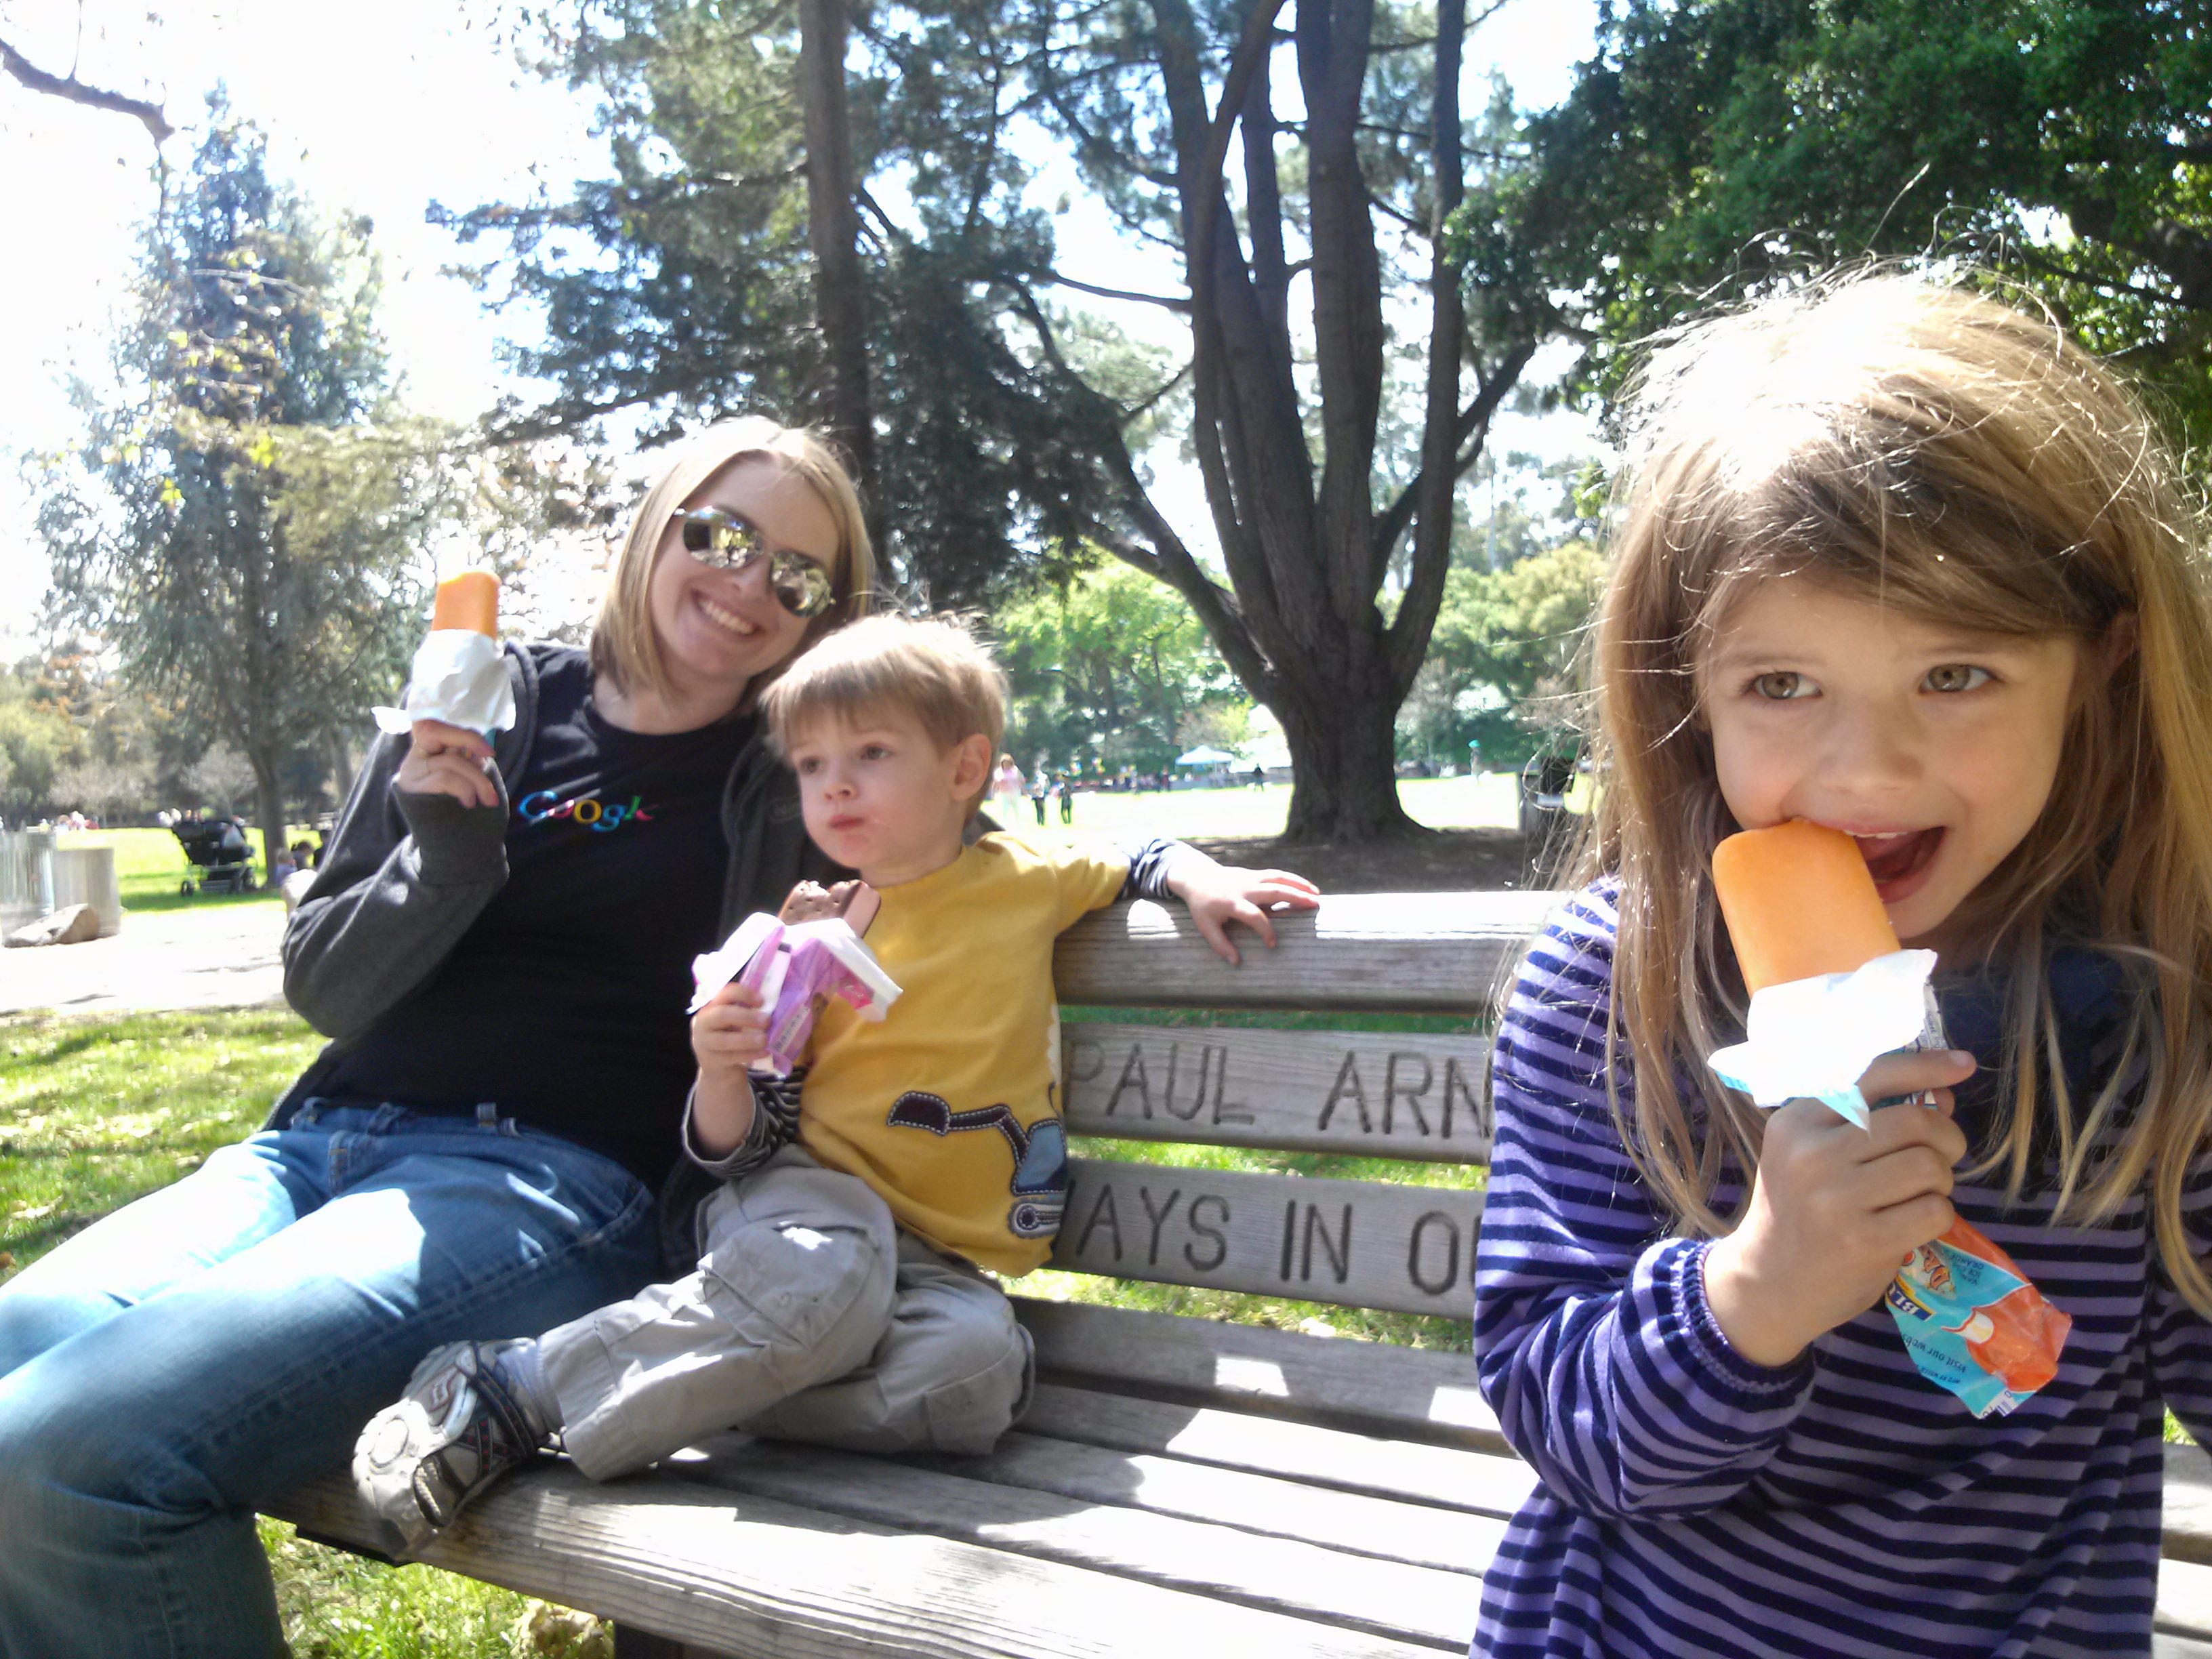 Family Eating Ice Cream On A Bench - Backpacking Dad